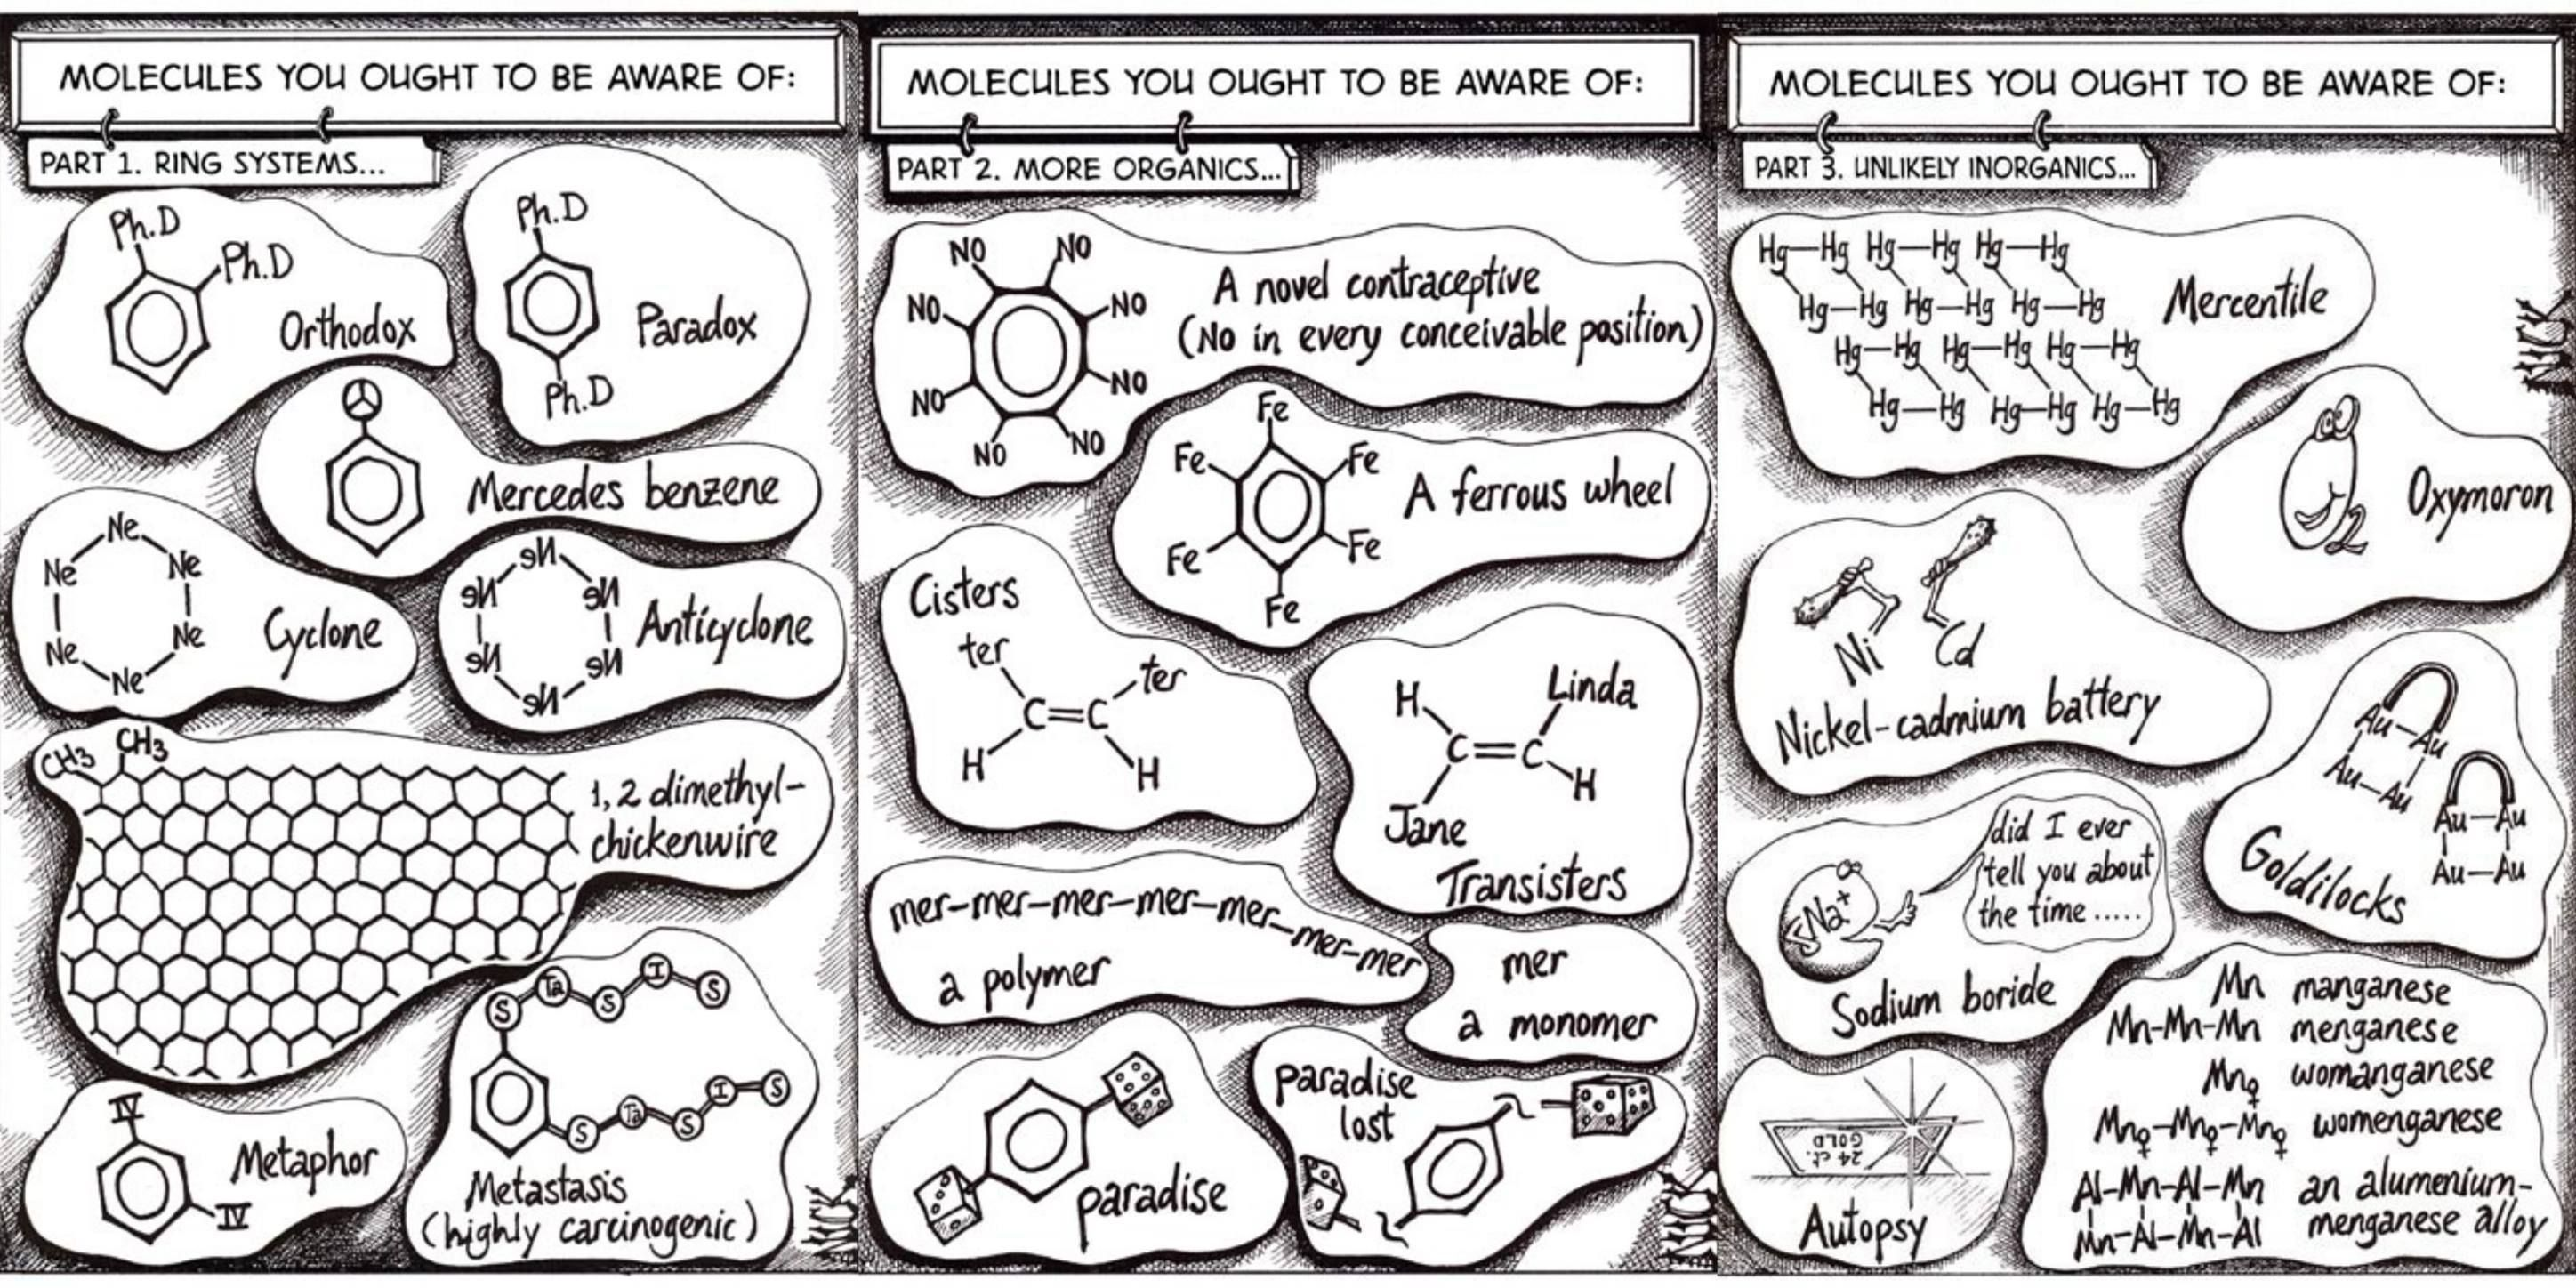 Molecules You Ought To Be Aware Of